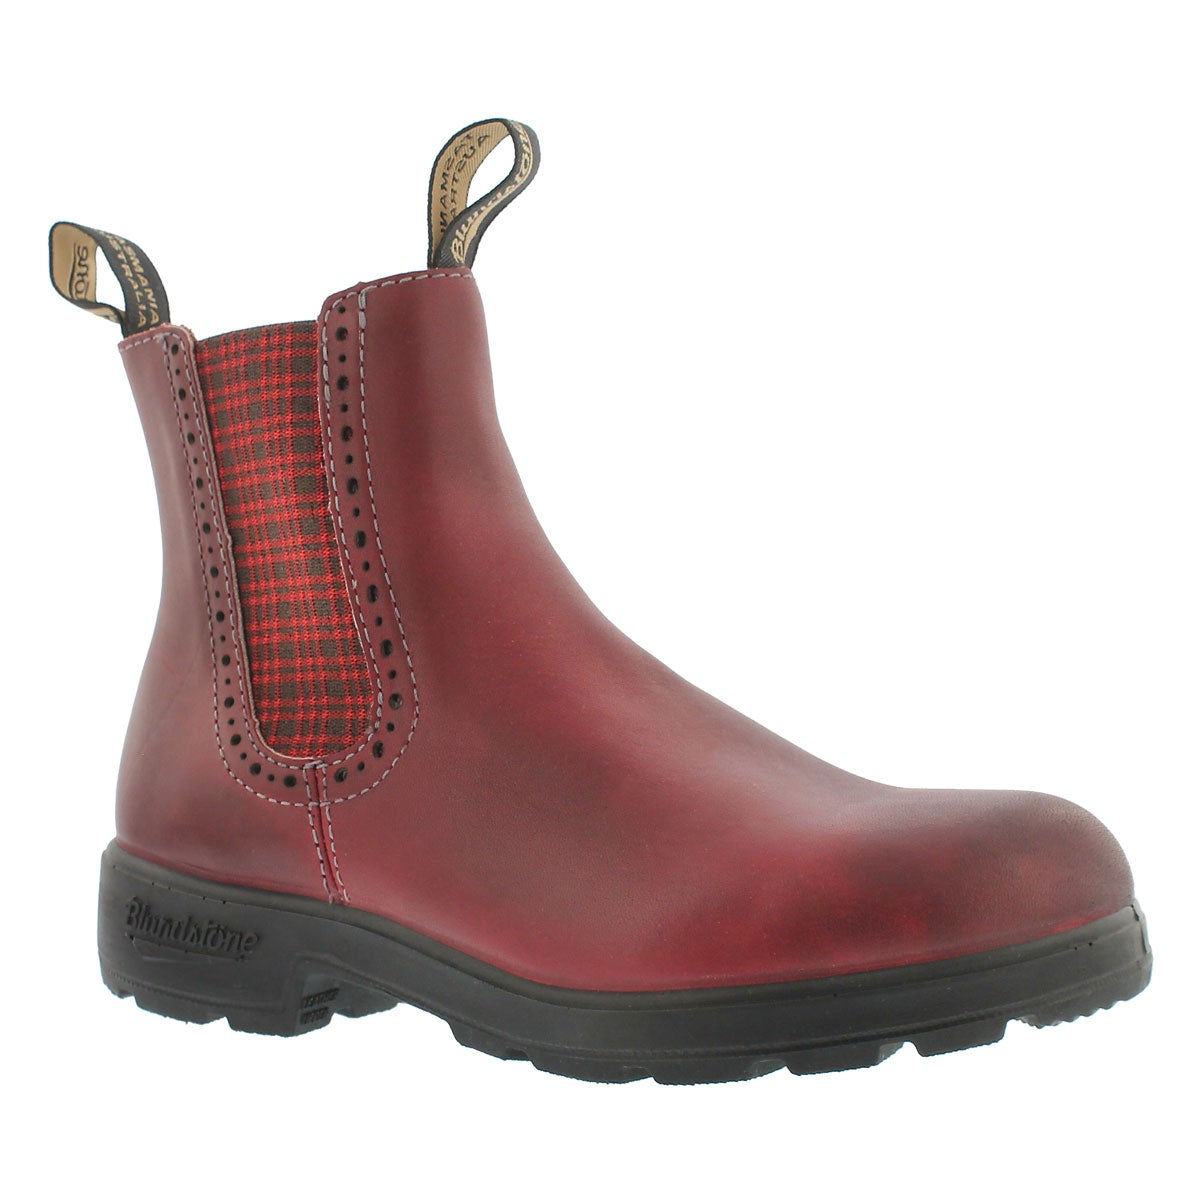 Women's 1442 GIRLFRIEND burgundy pull on boots